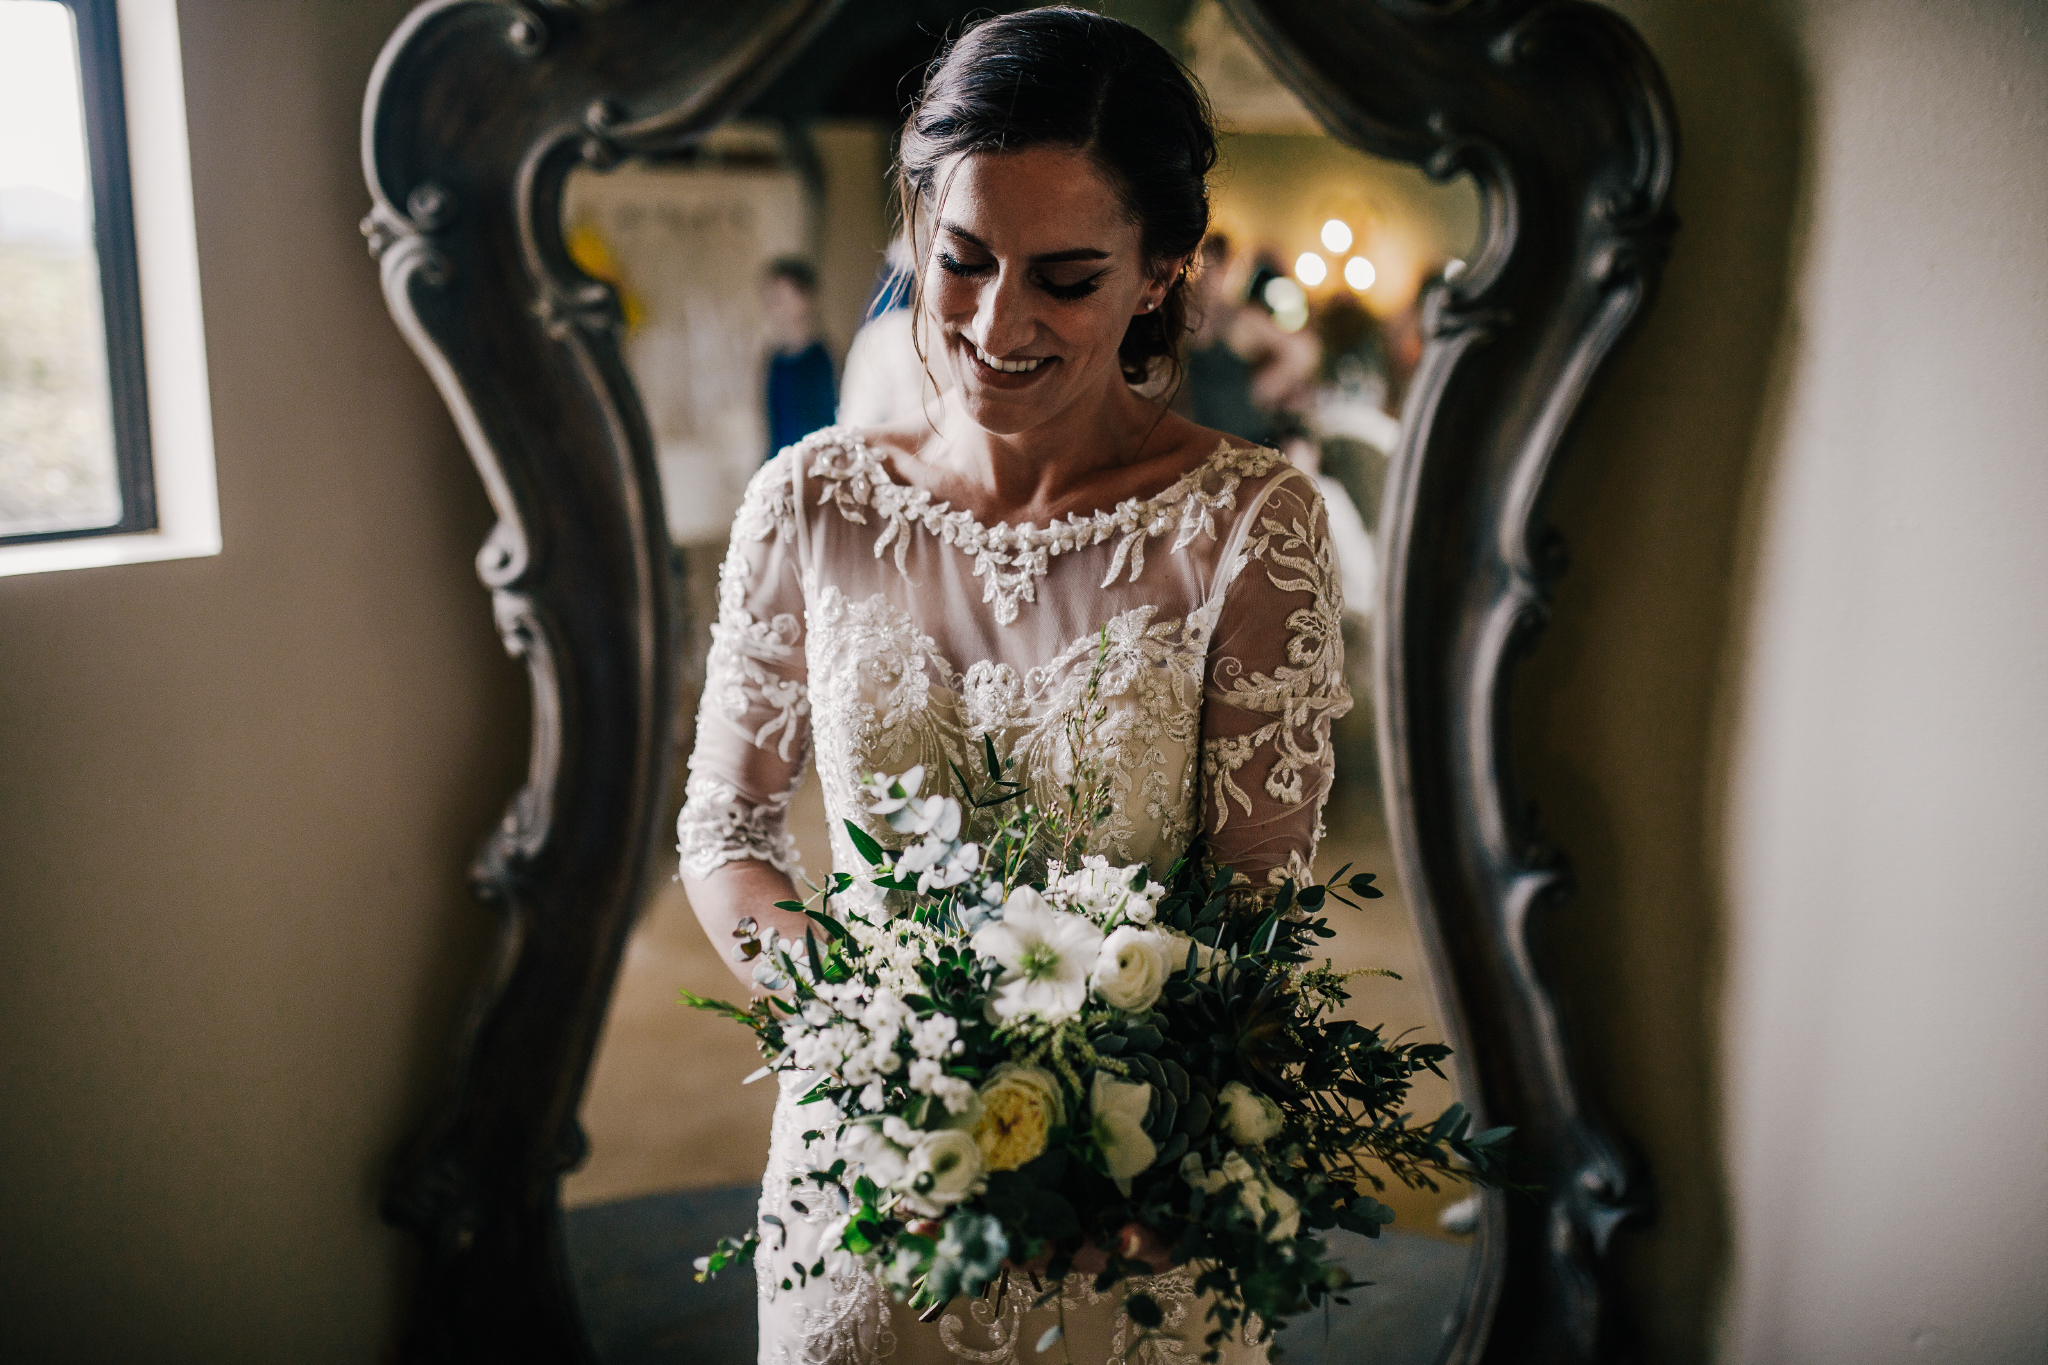 san diego wedding   photographer | bride in her wedding dress holding bouquet of flowers standing   in front of mirror